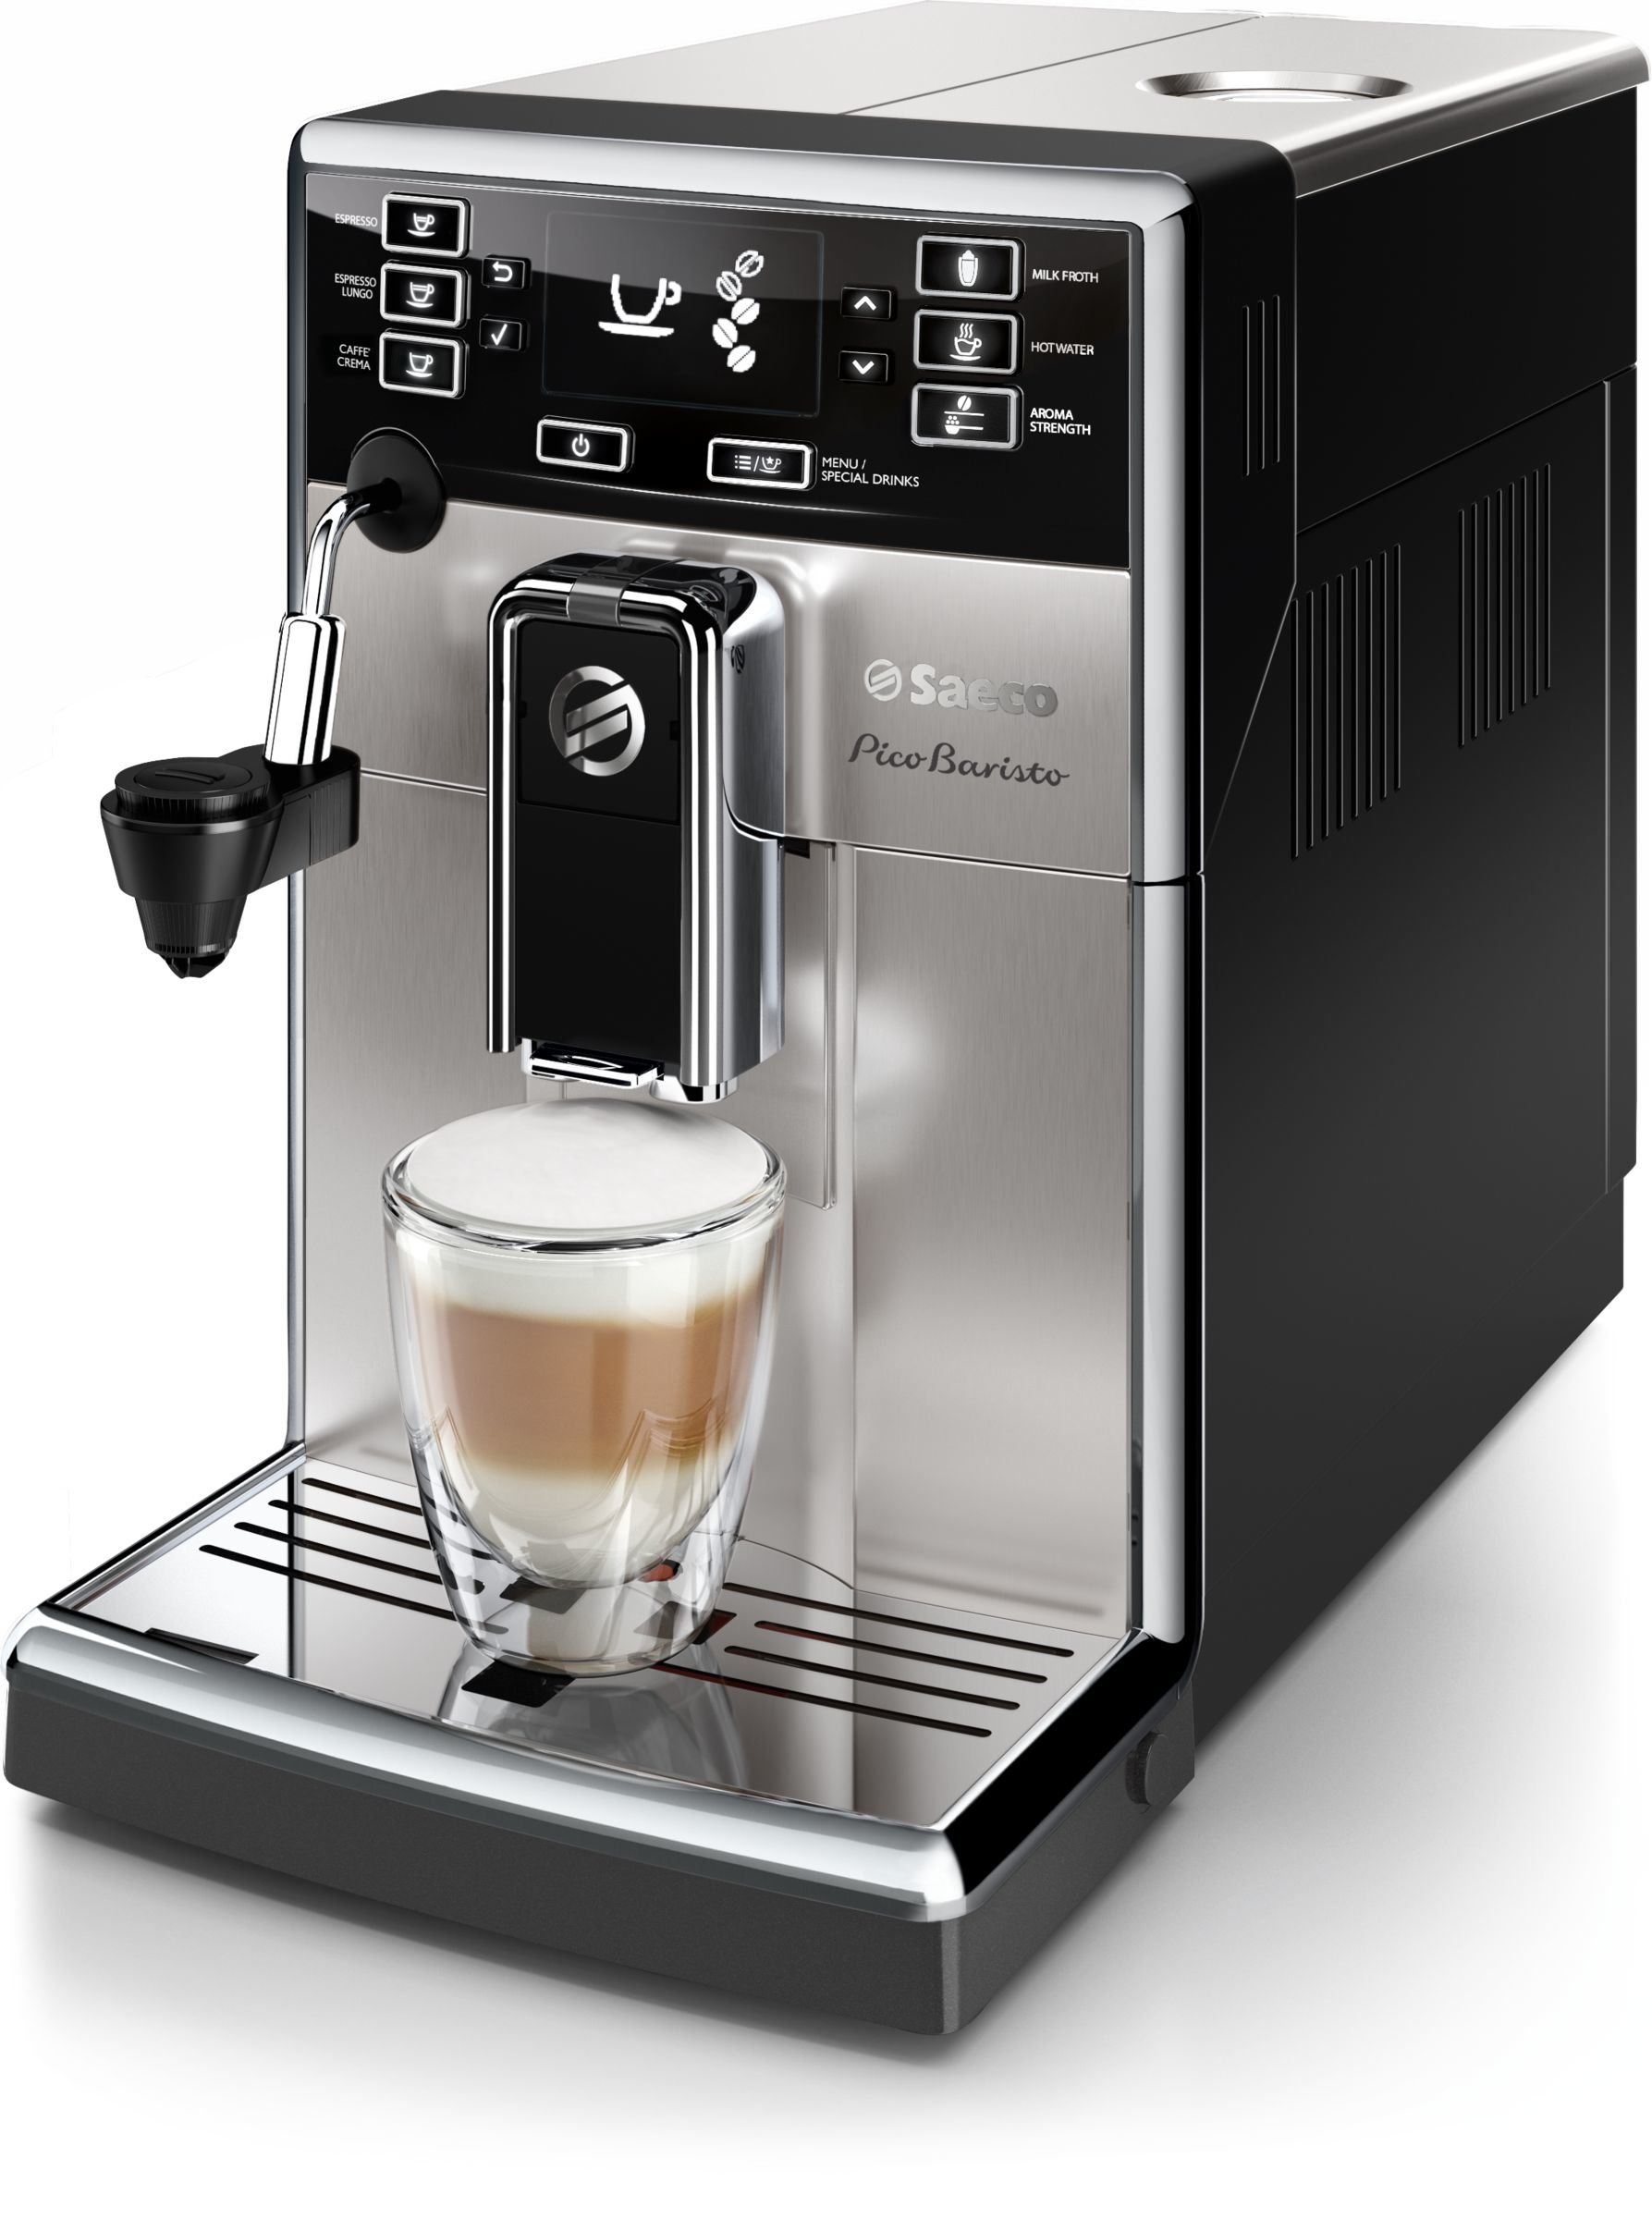 Saeco HD8924/47 PicoBaristo Automatic Milk Frother Espresso Machine, Stainless Steel